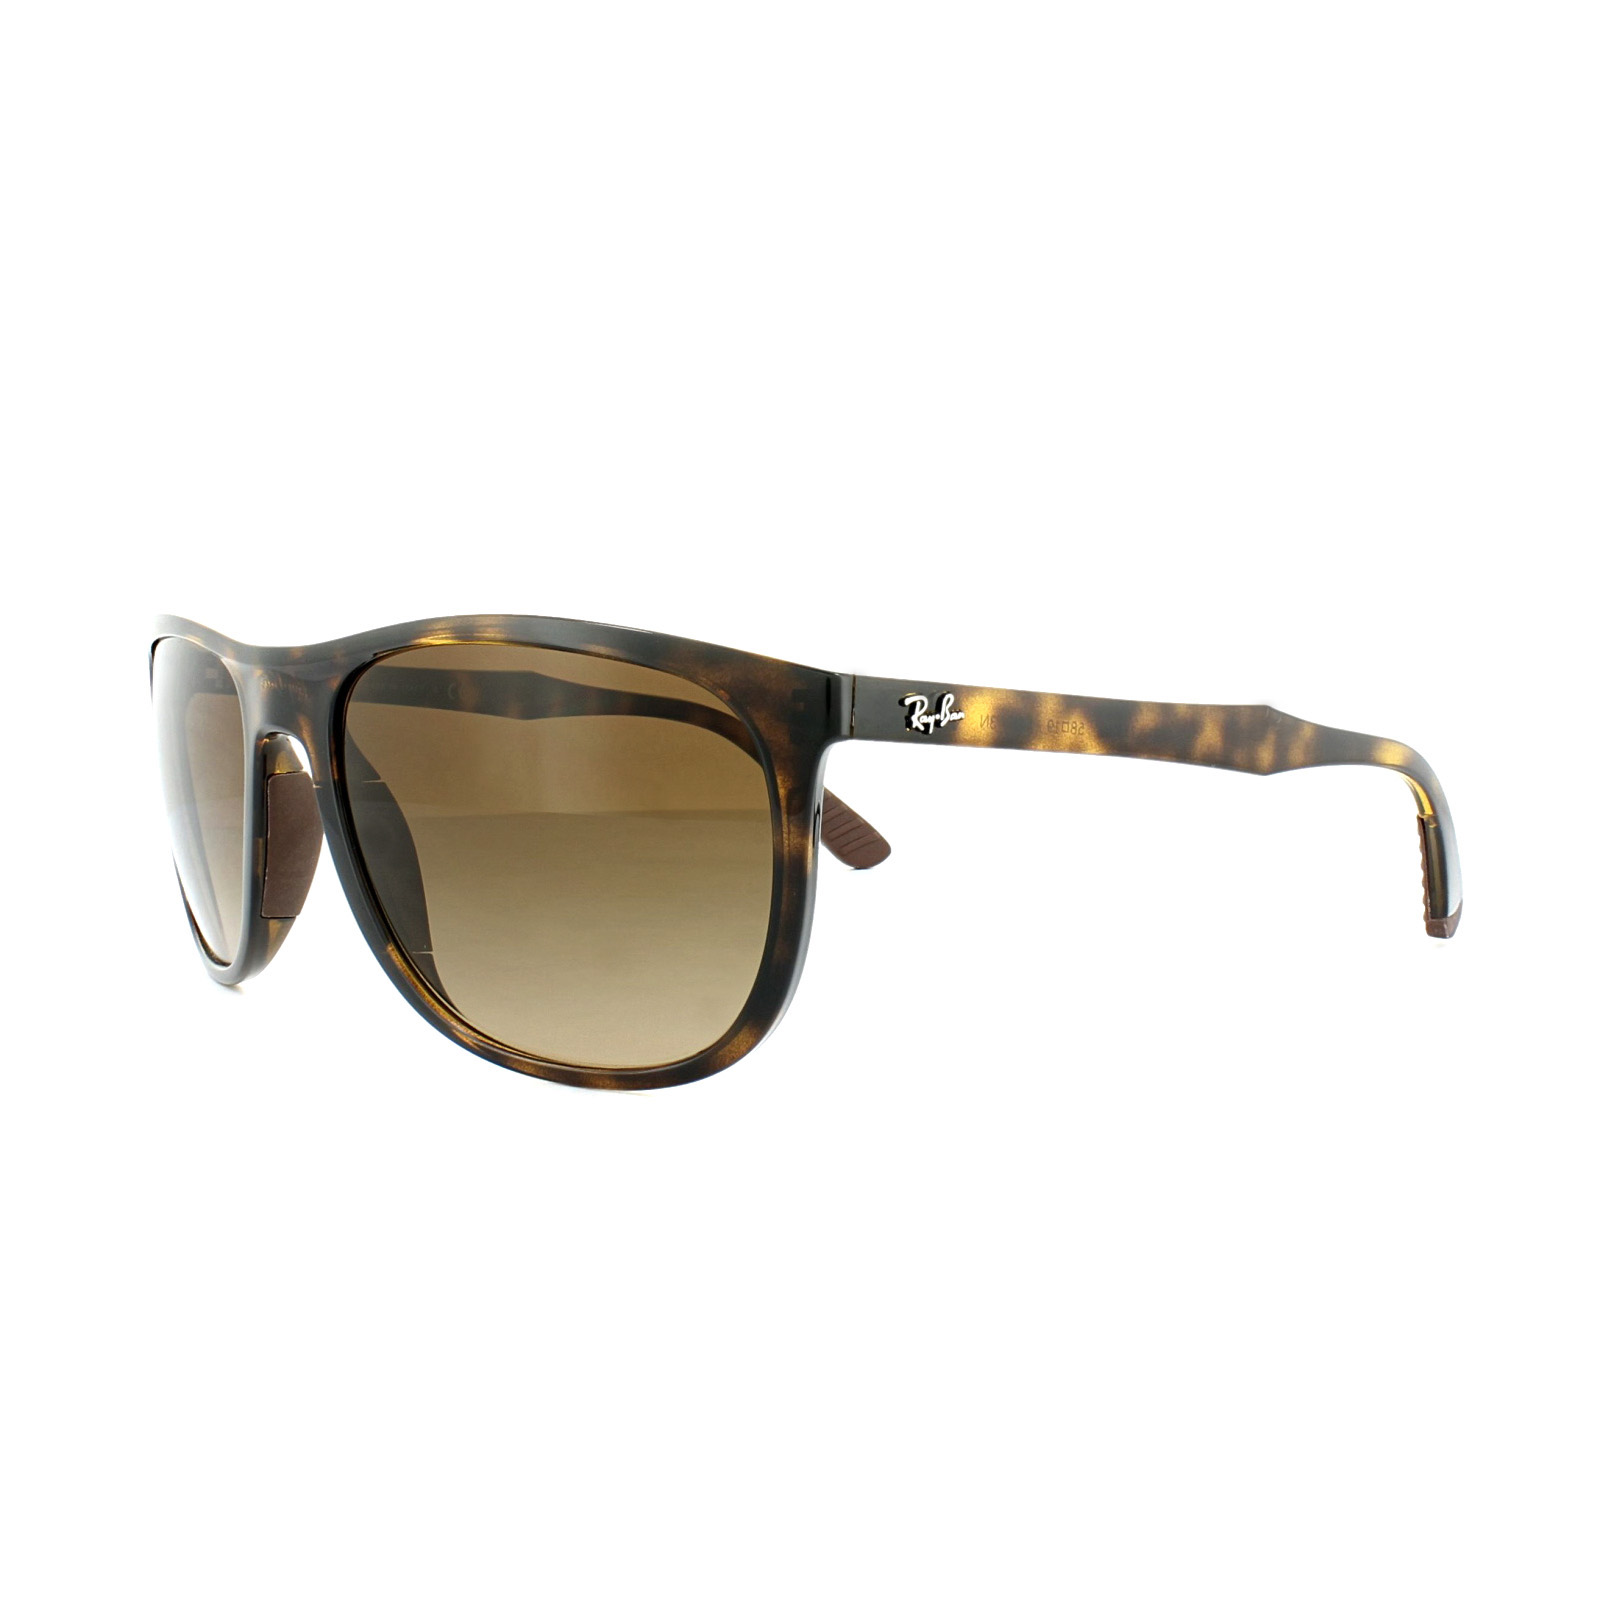 0c77e2e95fc Ray-Ban Sunglasses 4291 710 13 Tortoise Brown Gradient 8053672828474 ...